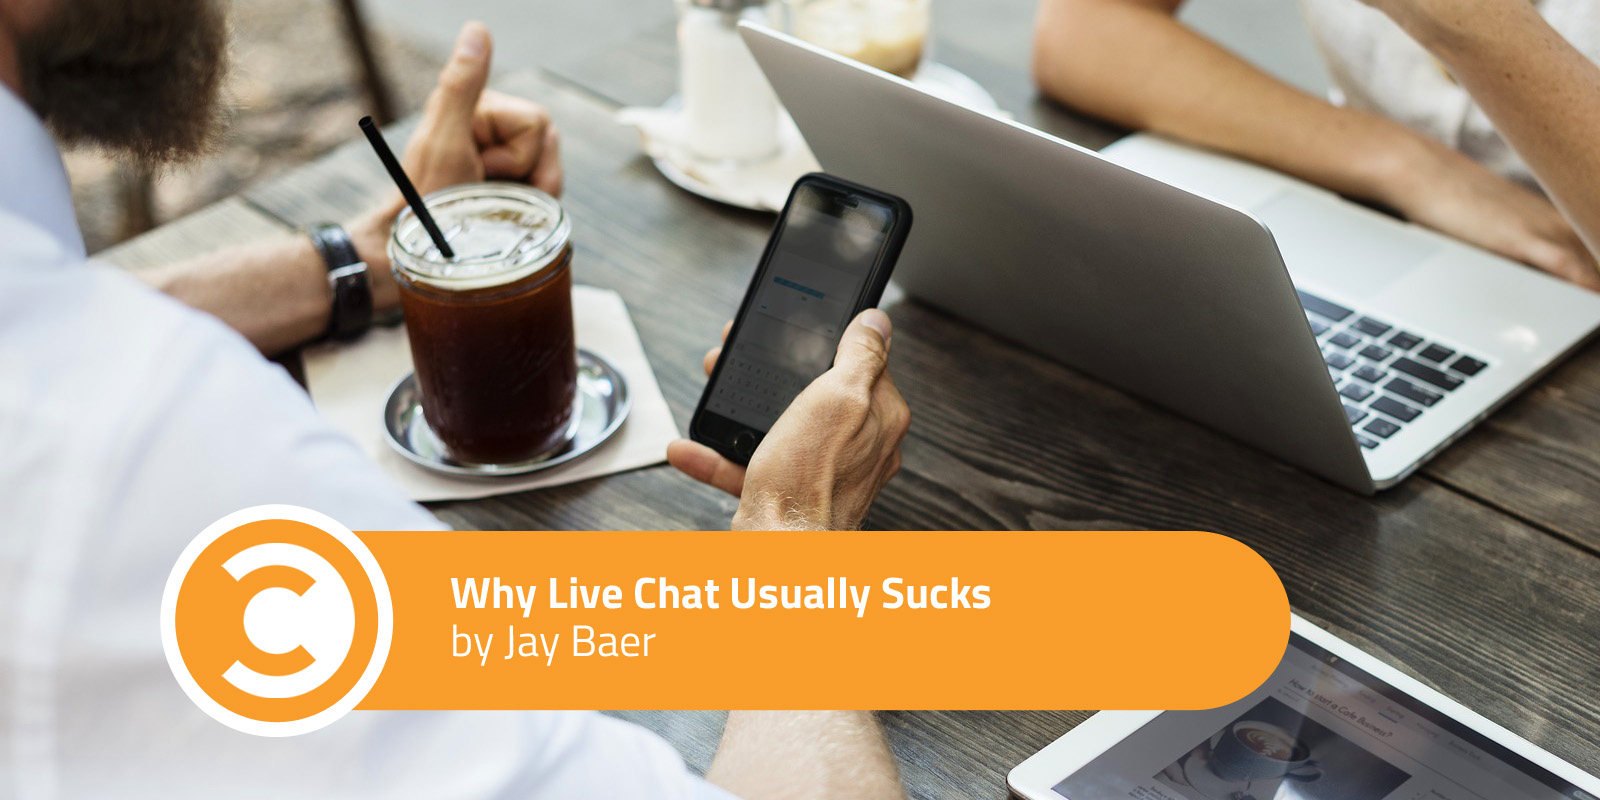 Why Live Chat Usually Sucks